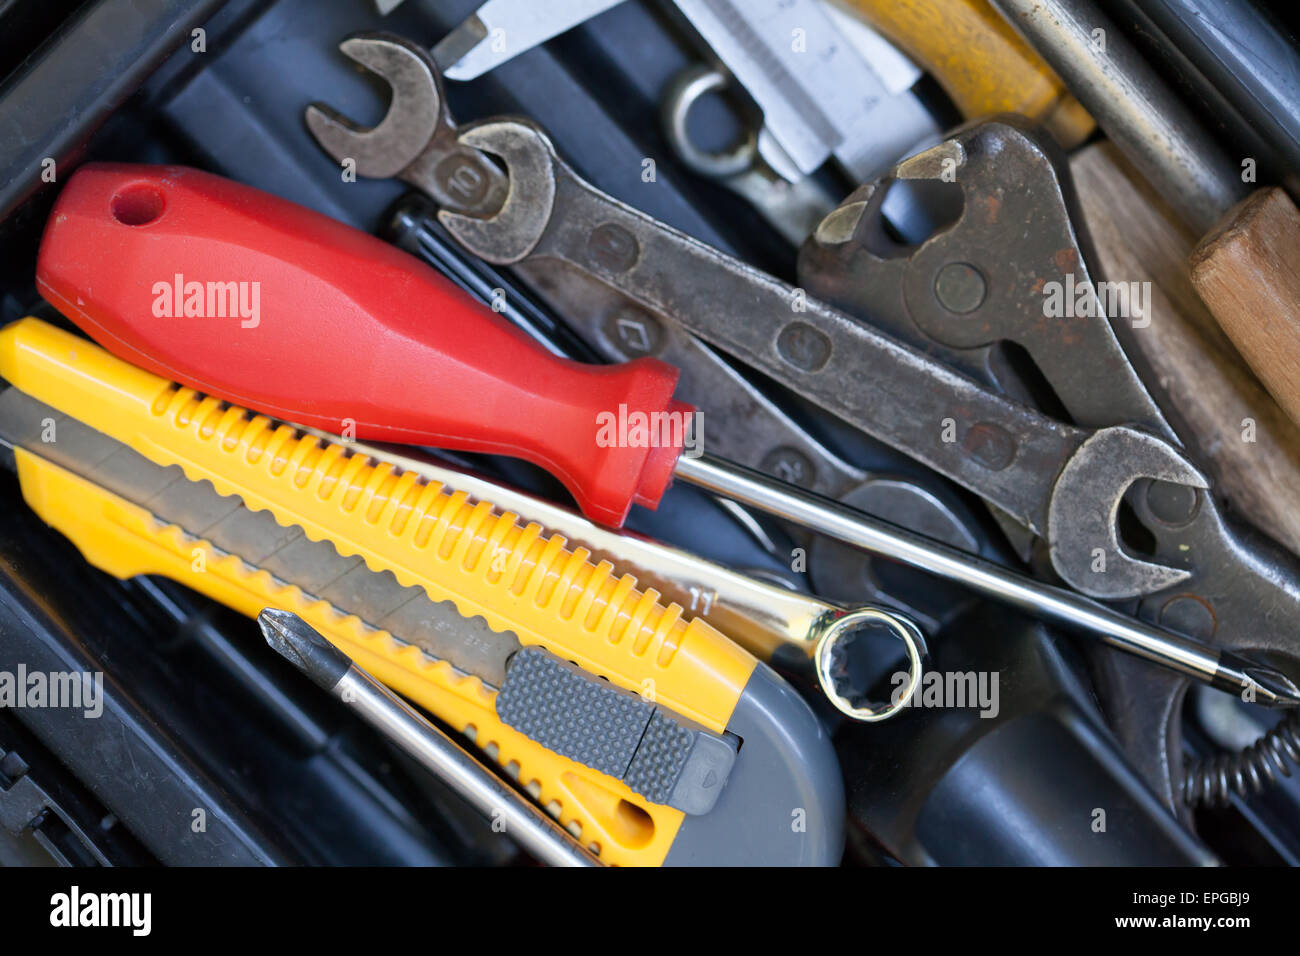 Different tools - Stock Image